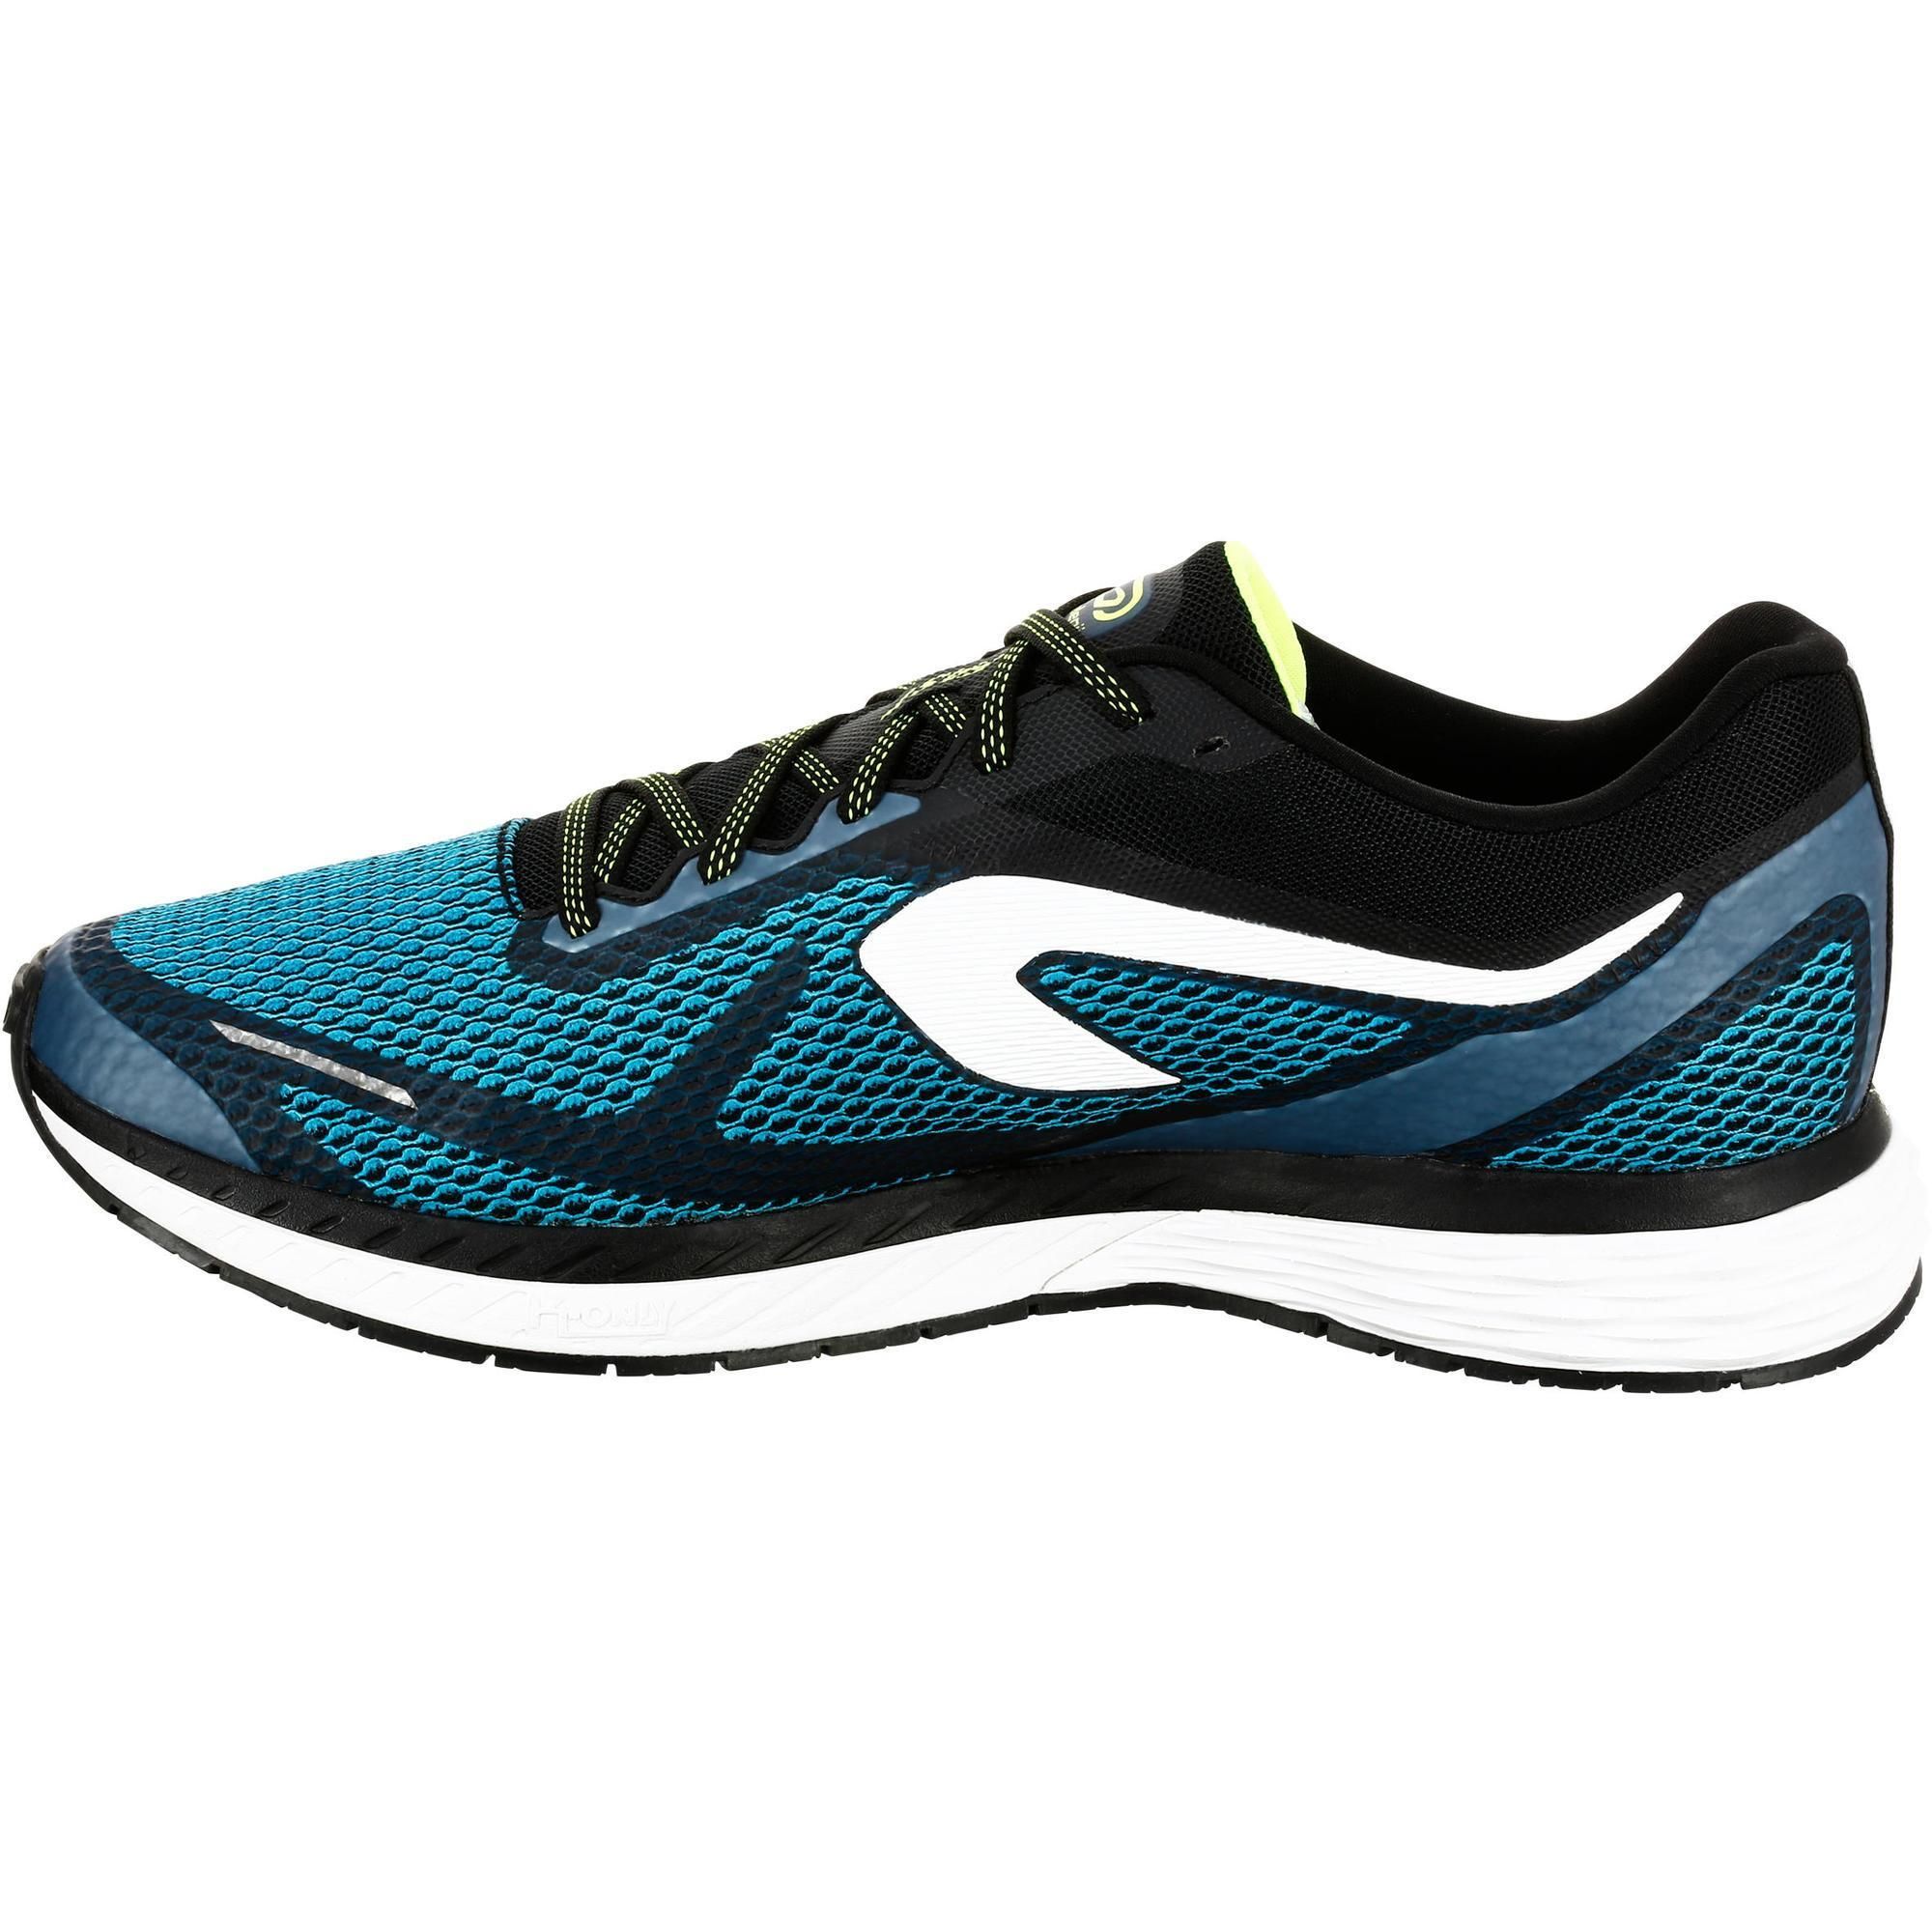 Chaussures Kiprun Fast Homme- Kalenji 40 Turquoise